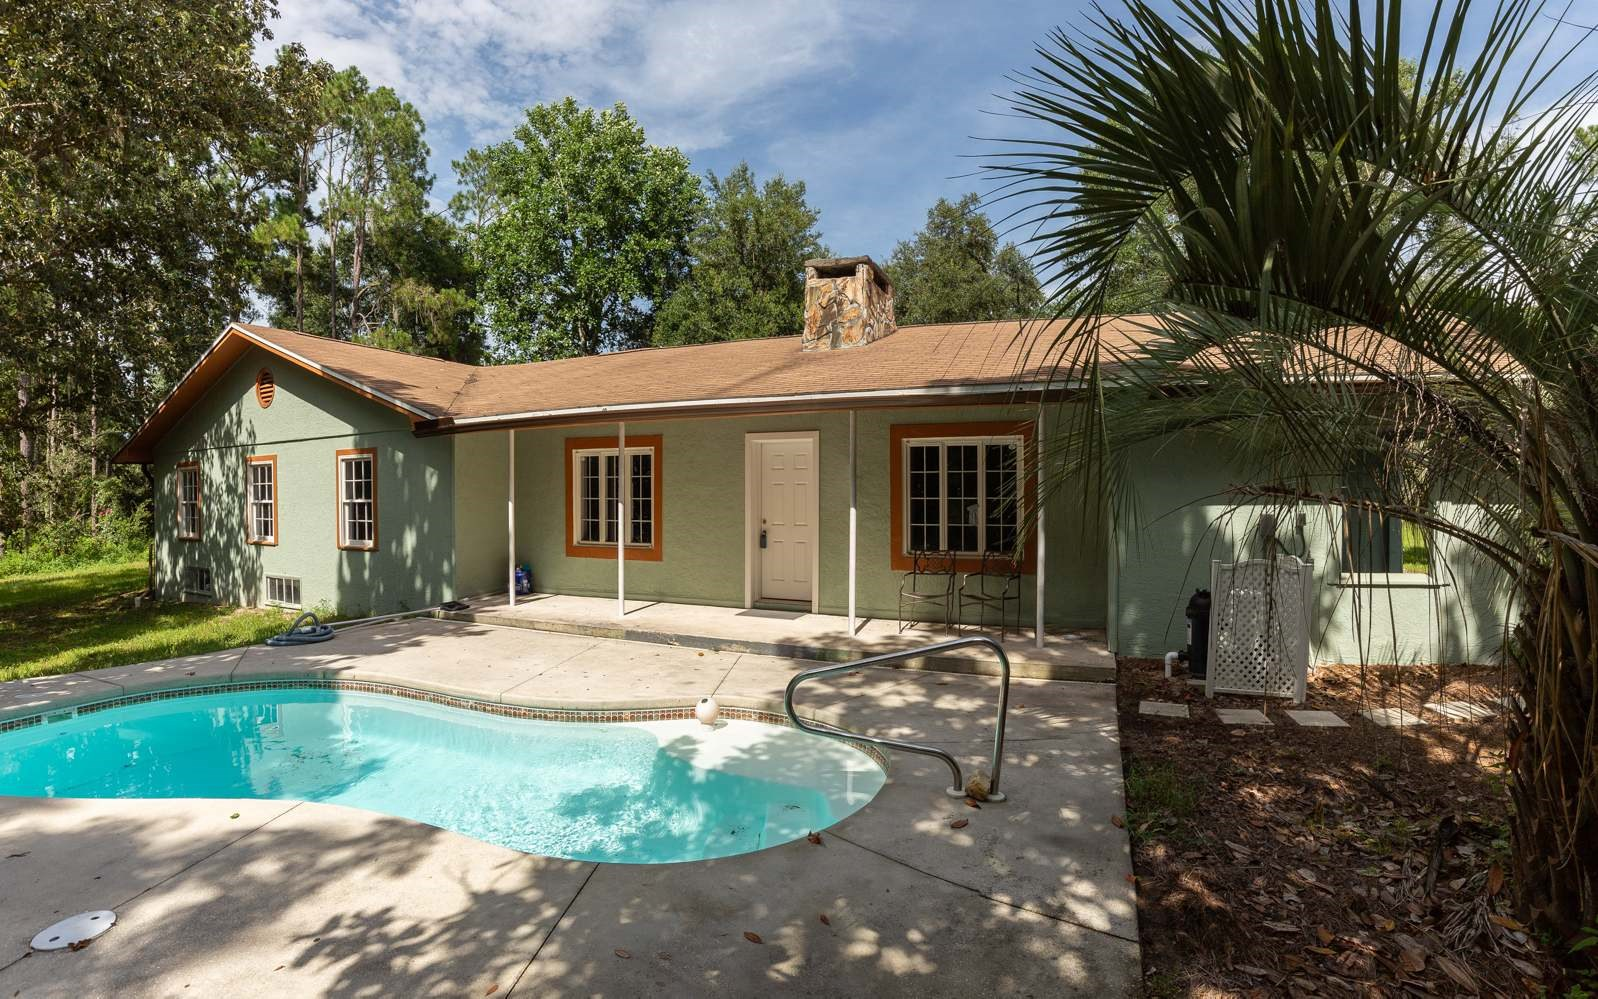 Remodeled Home with Basement For Sale in Suwannee County, FL